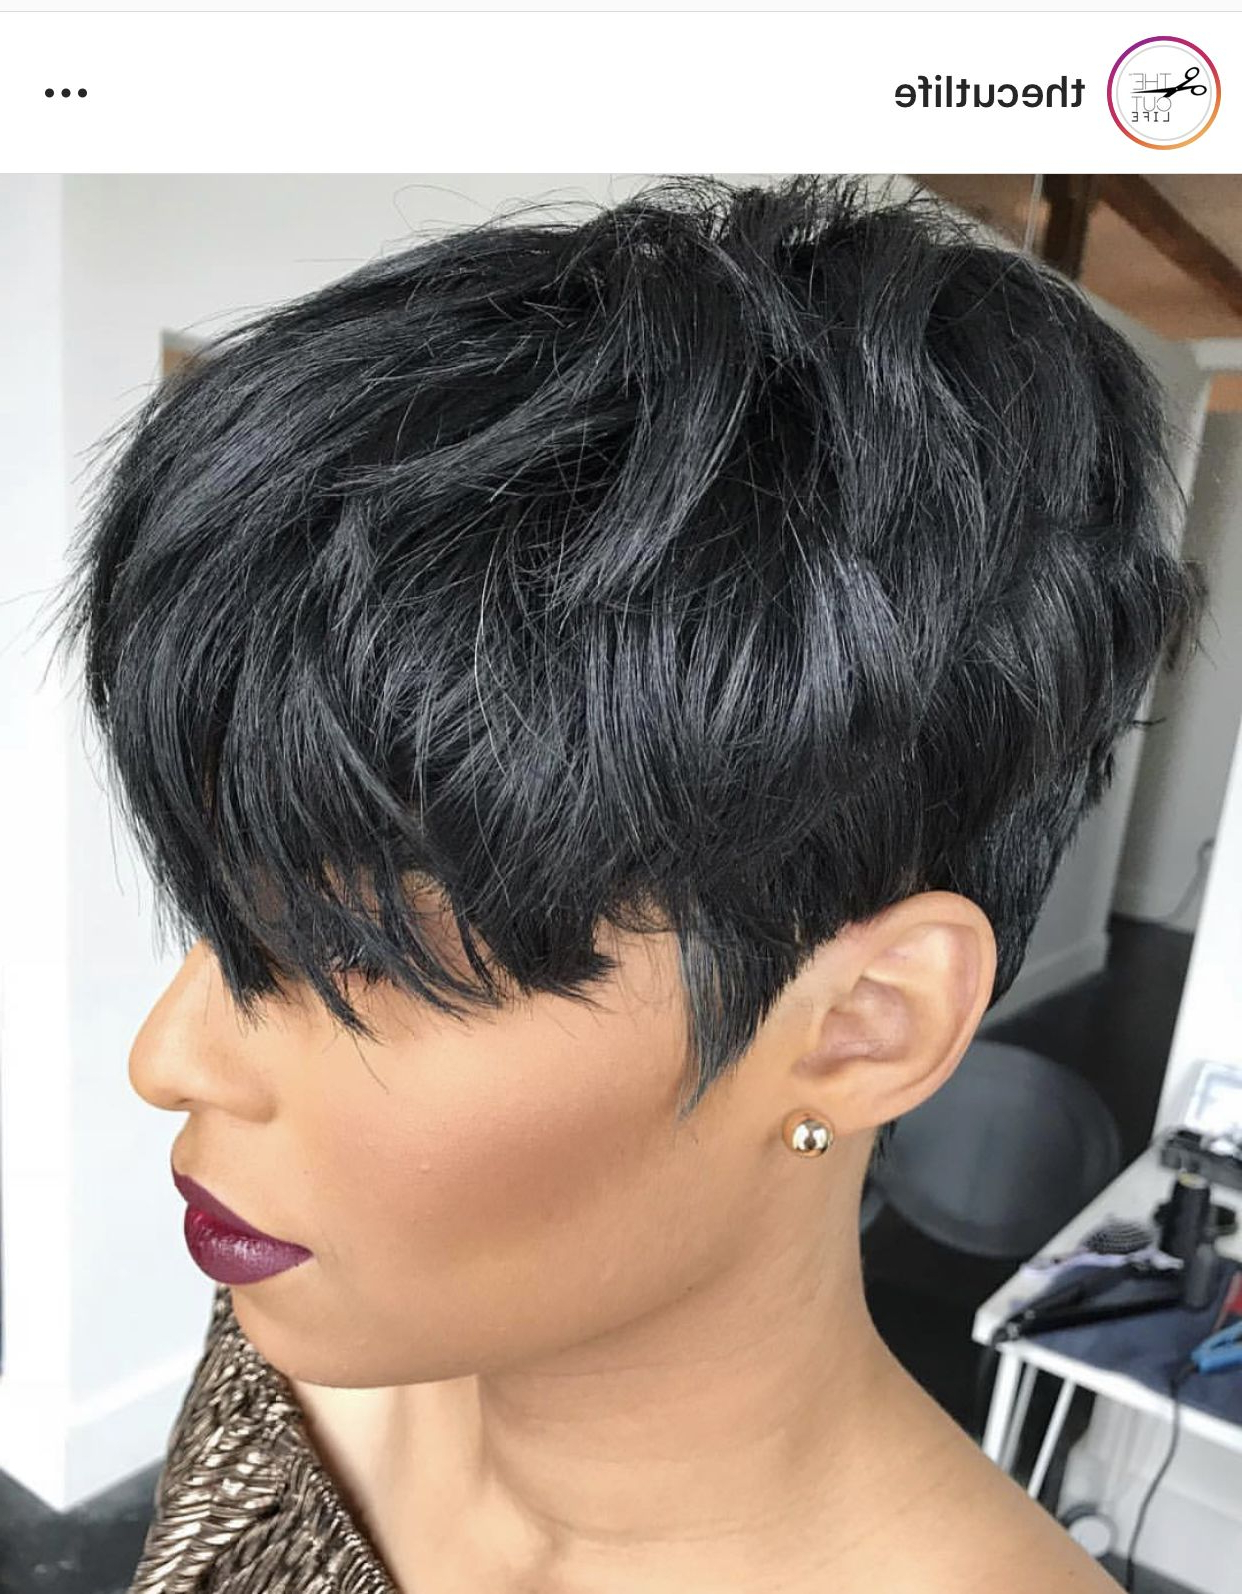 Pin On Short Hair Don't Care Intended For Recent Sassy Short Pixie Haircuts With Bangs (View 11 of 20)